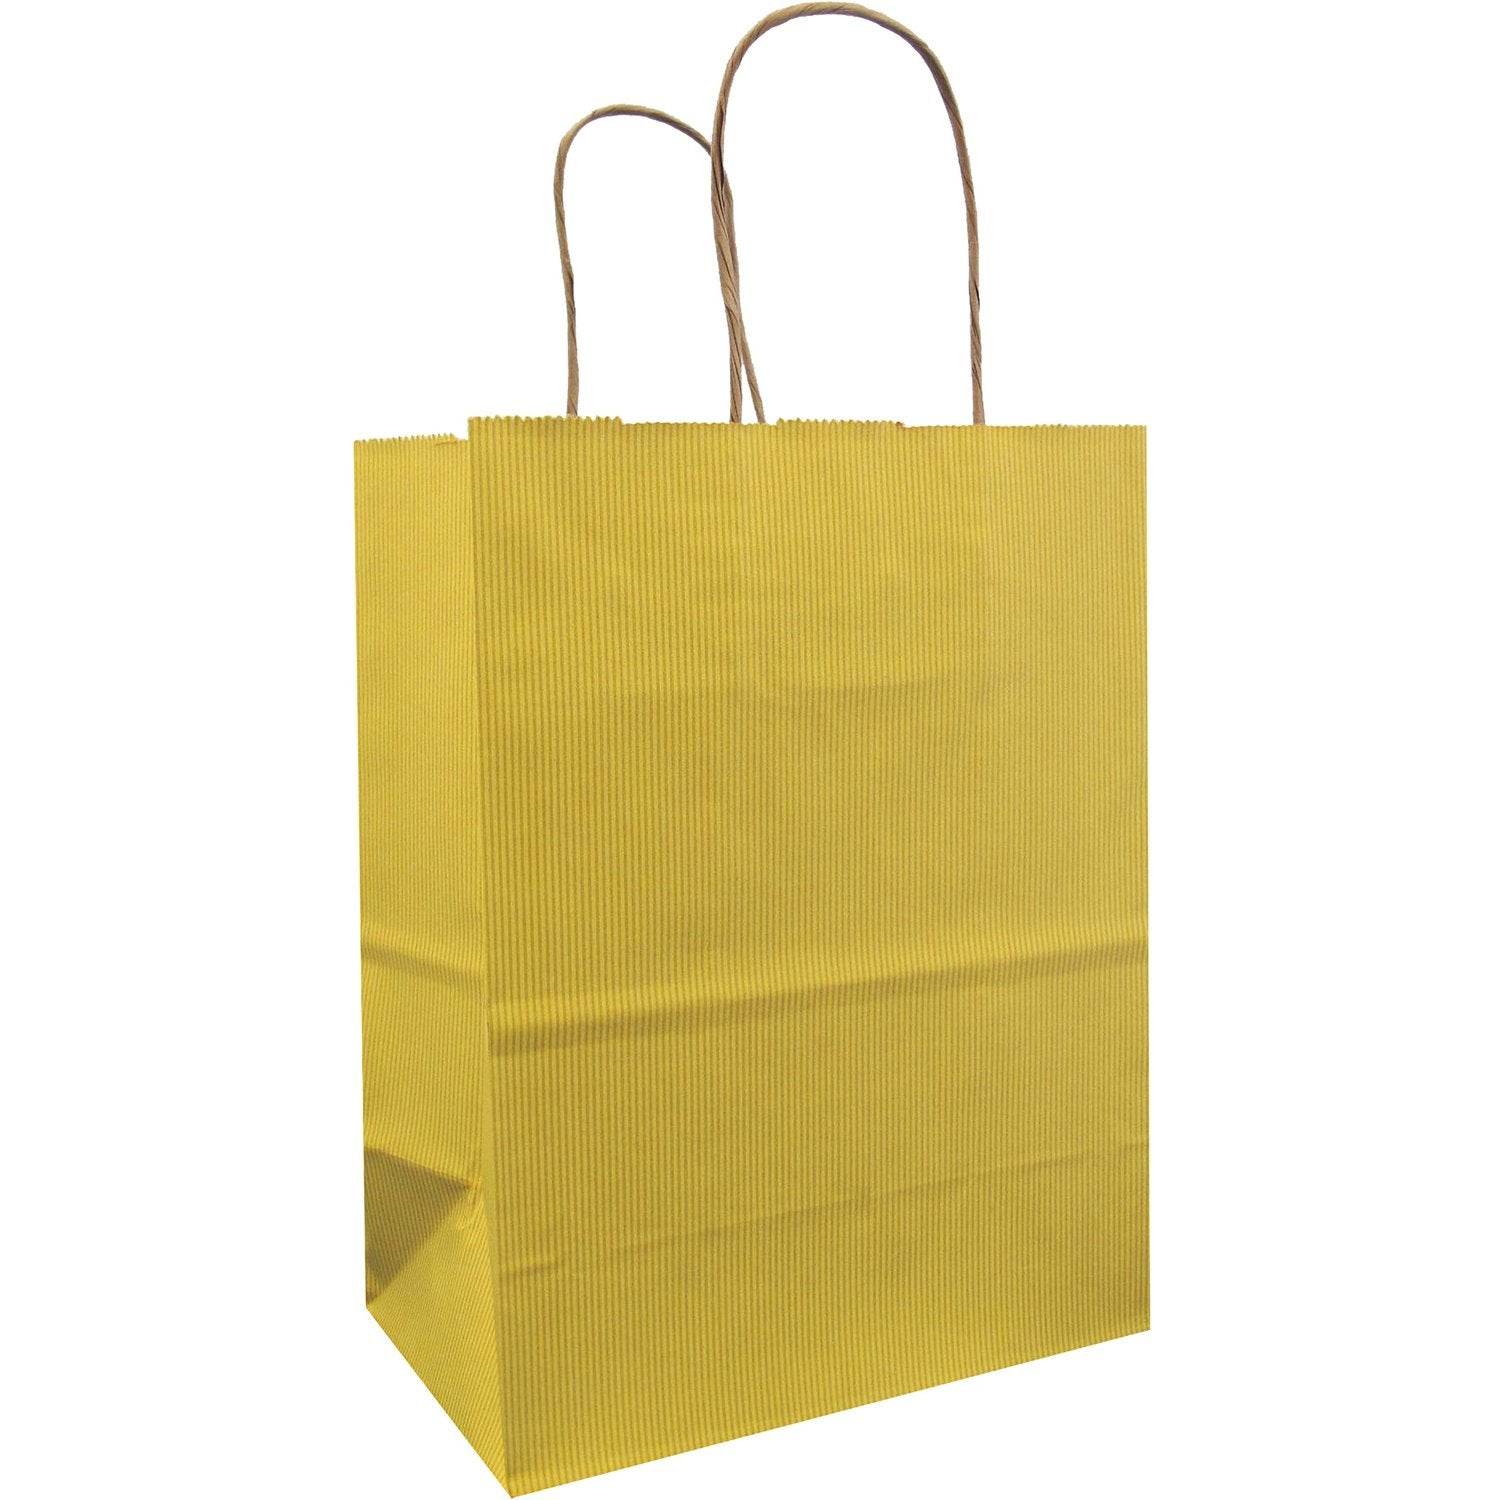 Jillson & Roberts Medium Kraft Bags, Yellow